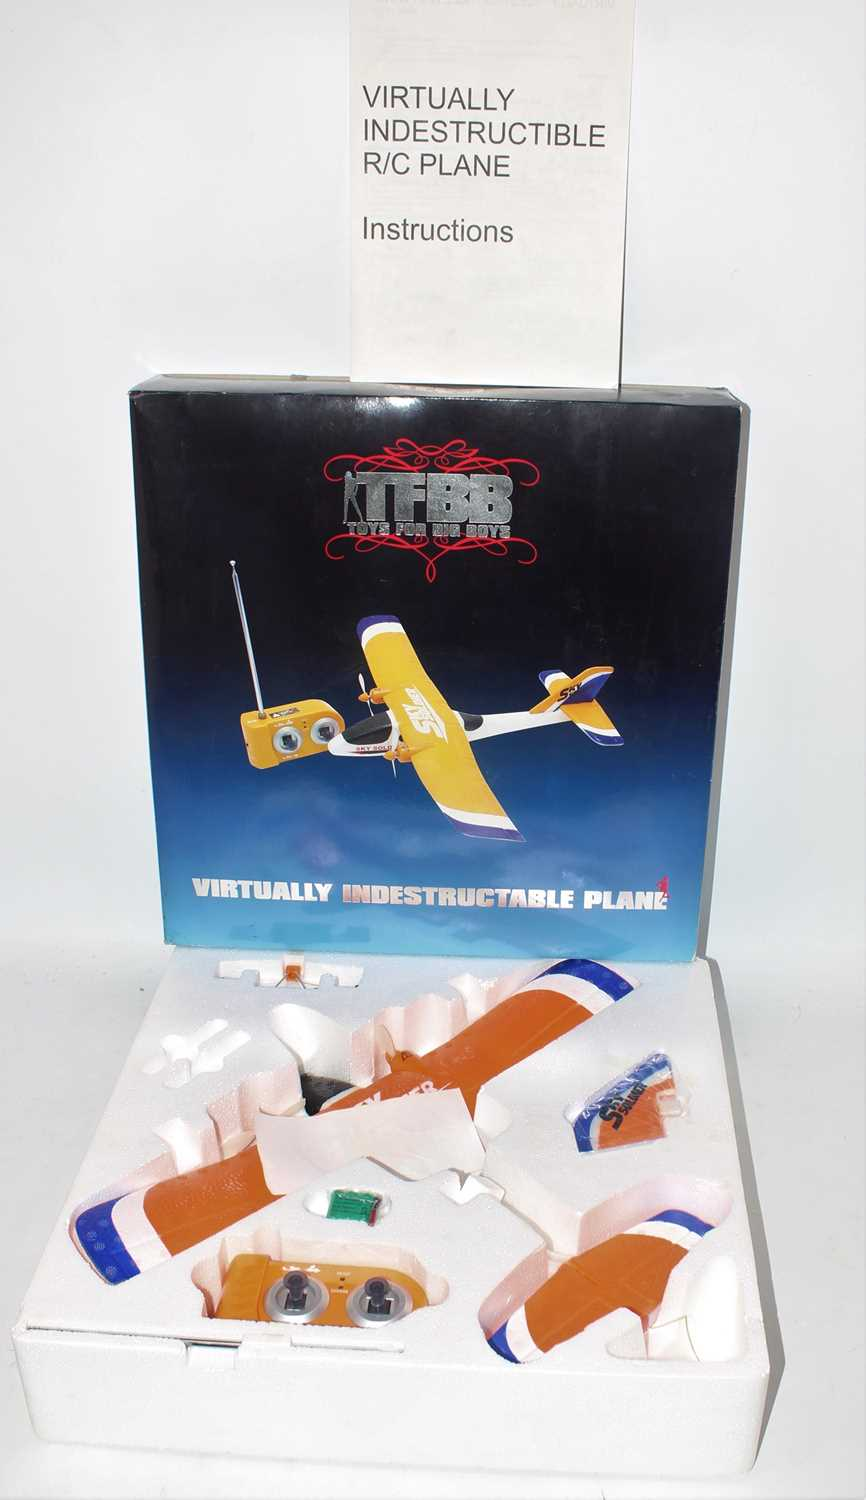 Toys for Big Boys boxed radio controlled Virtually Indestructible Sky Soldier Plane housed in the